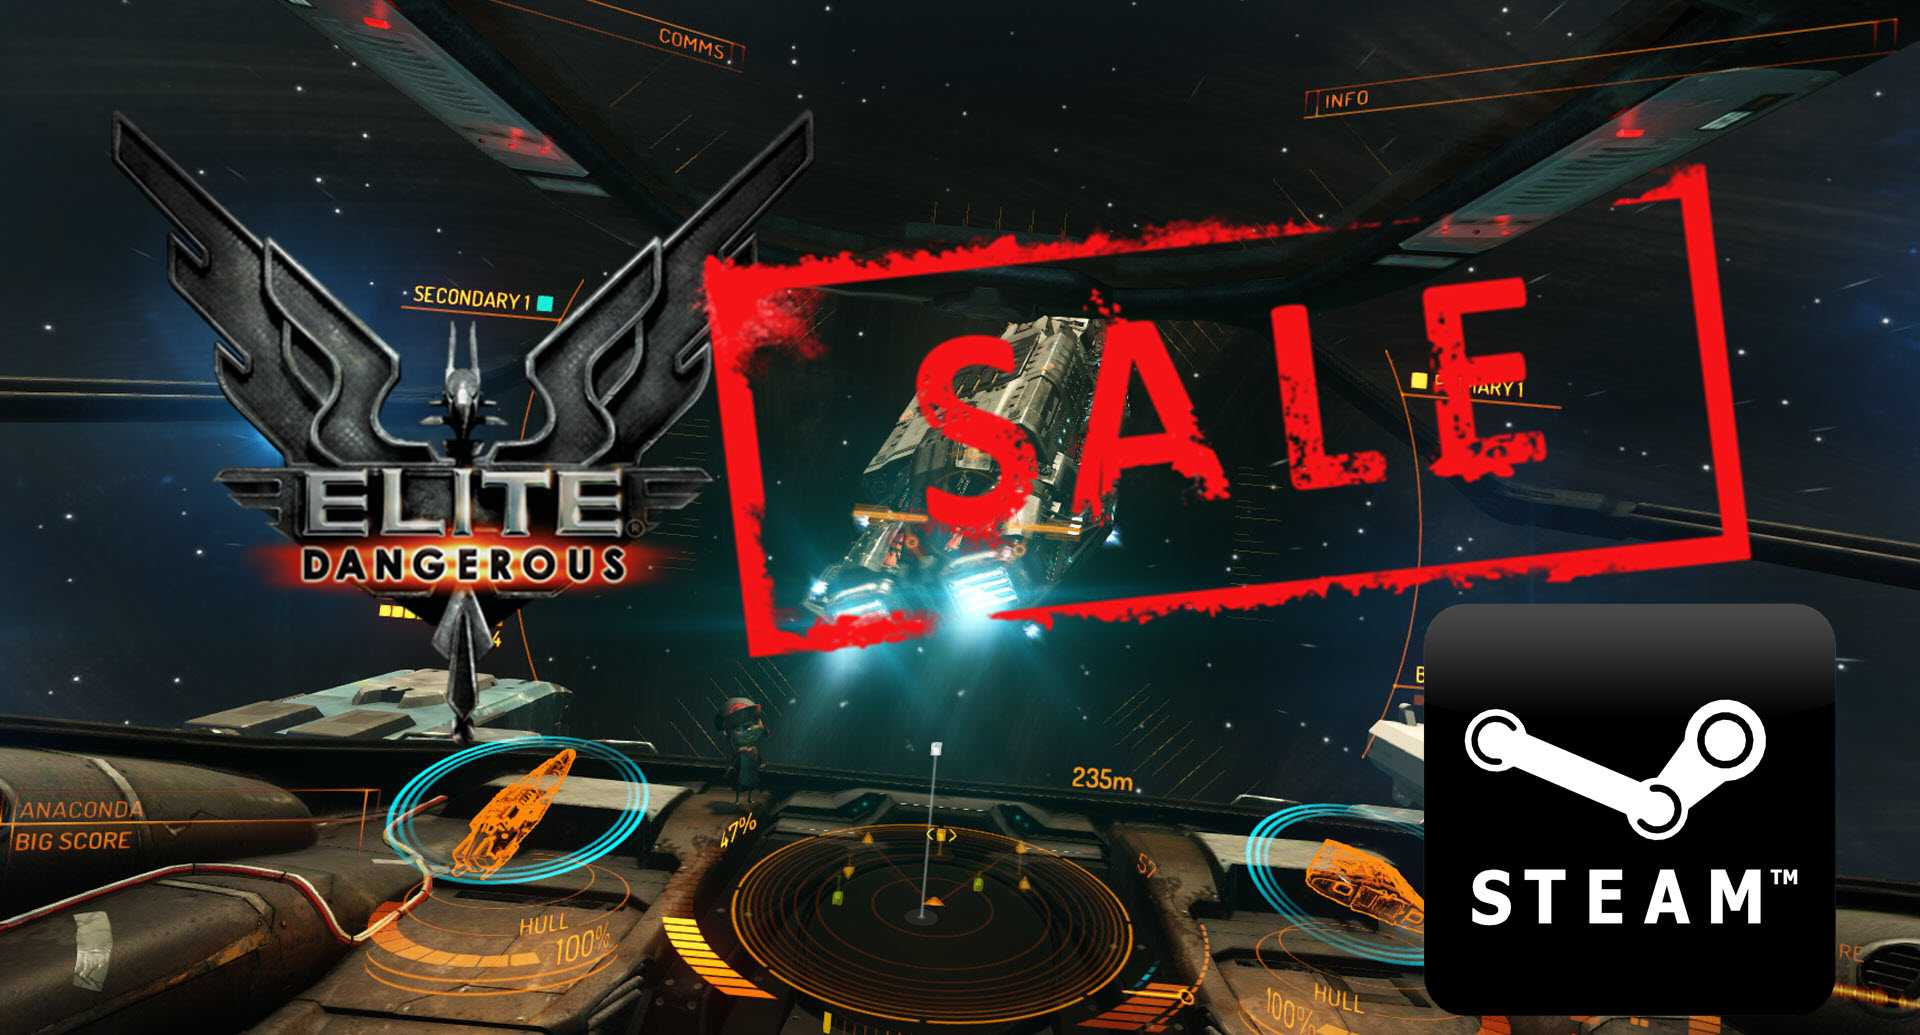 Elite: Dangerous on Sale! Only 12,37 on Steam!